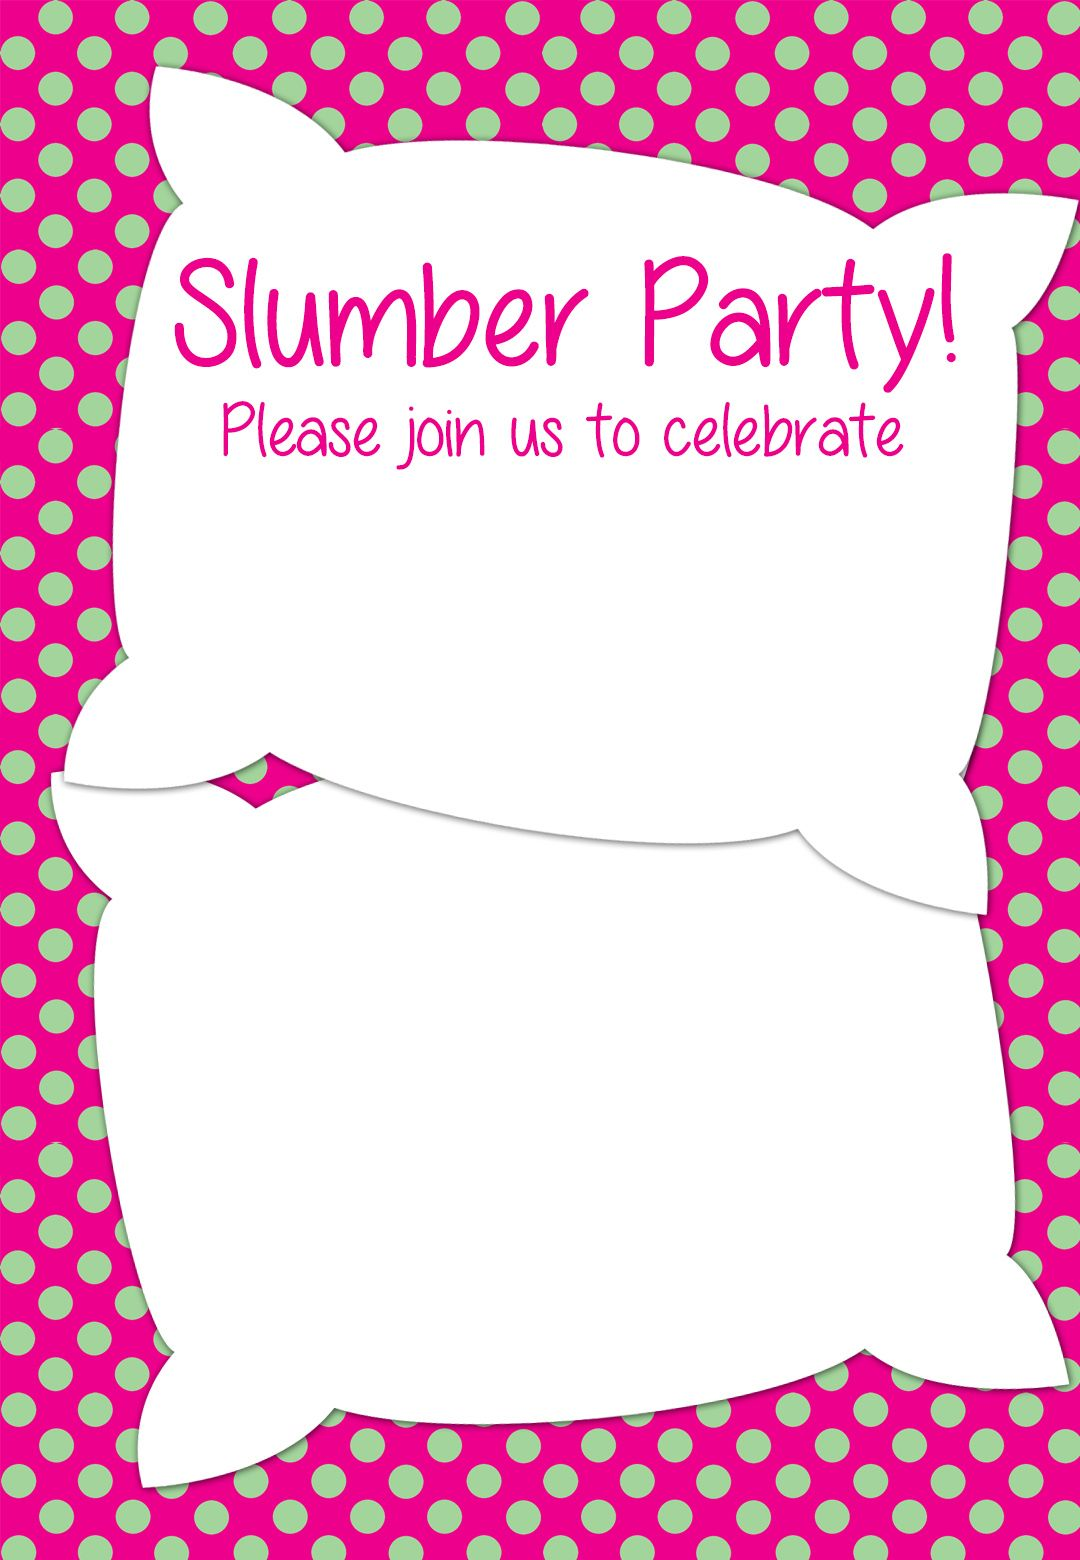 free printable slumber party invitation party ideas in 2018